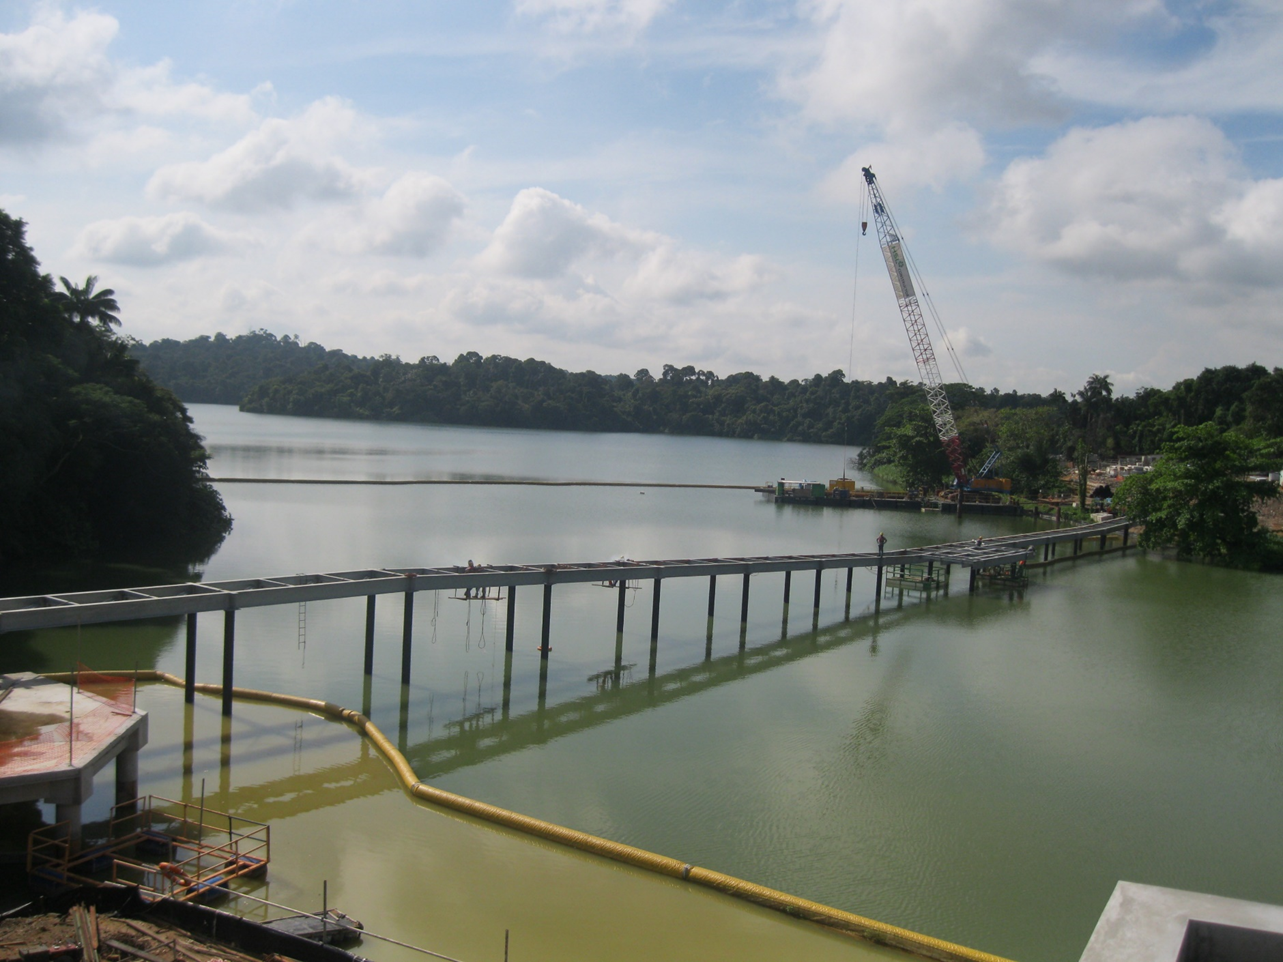 2011 Mandai Zoo Bridge Project - Piling & Decking Works